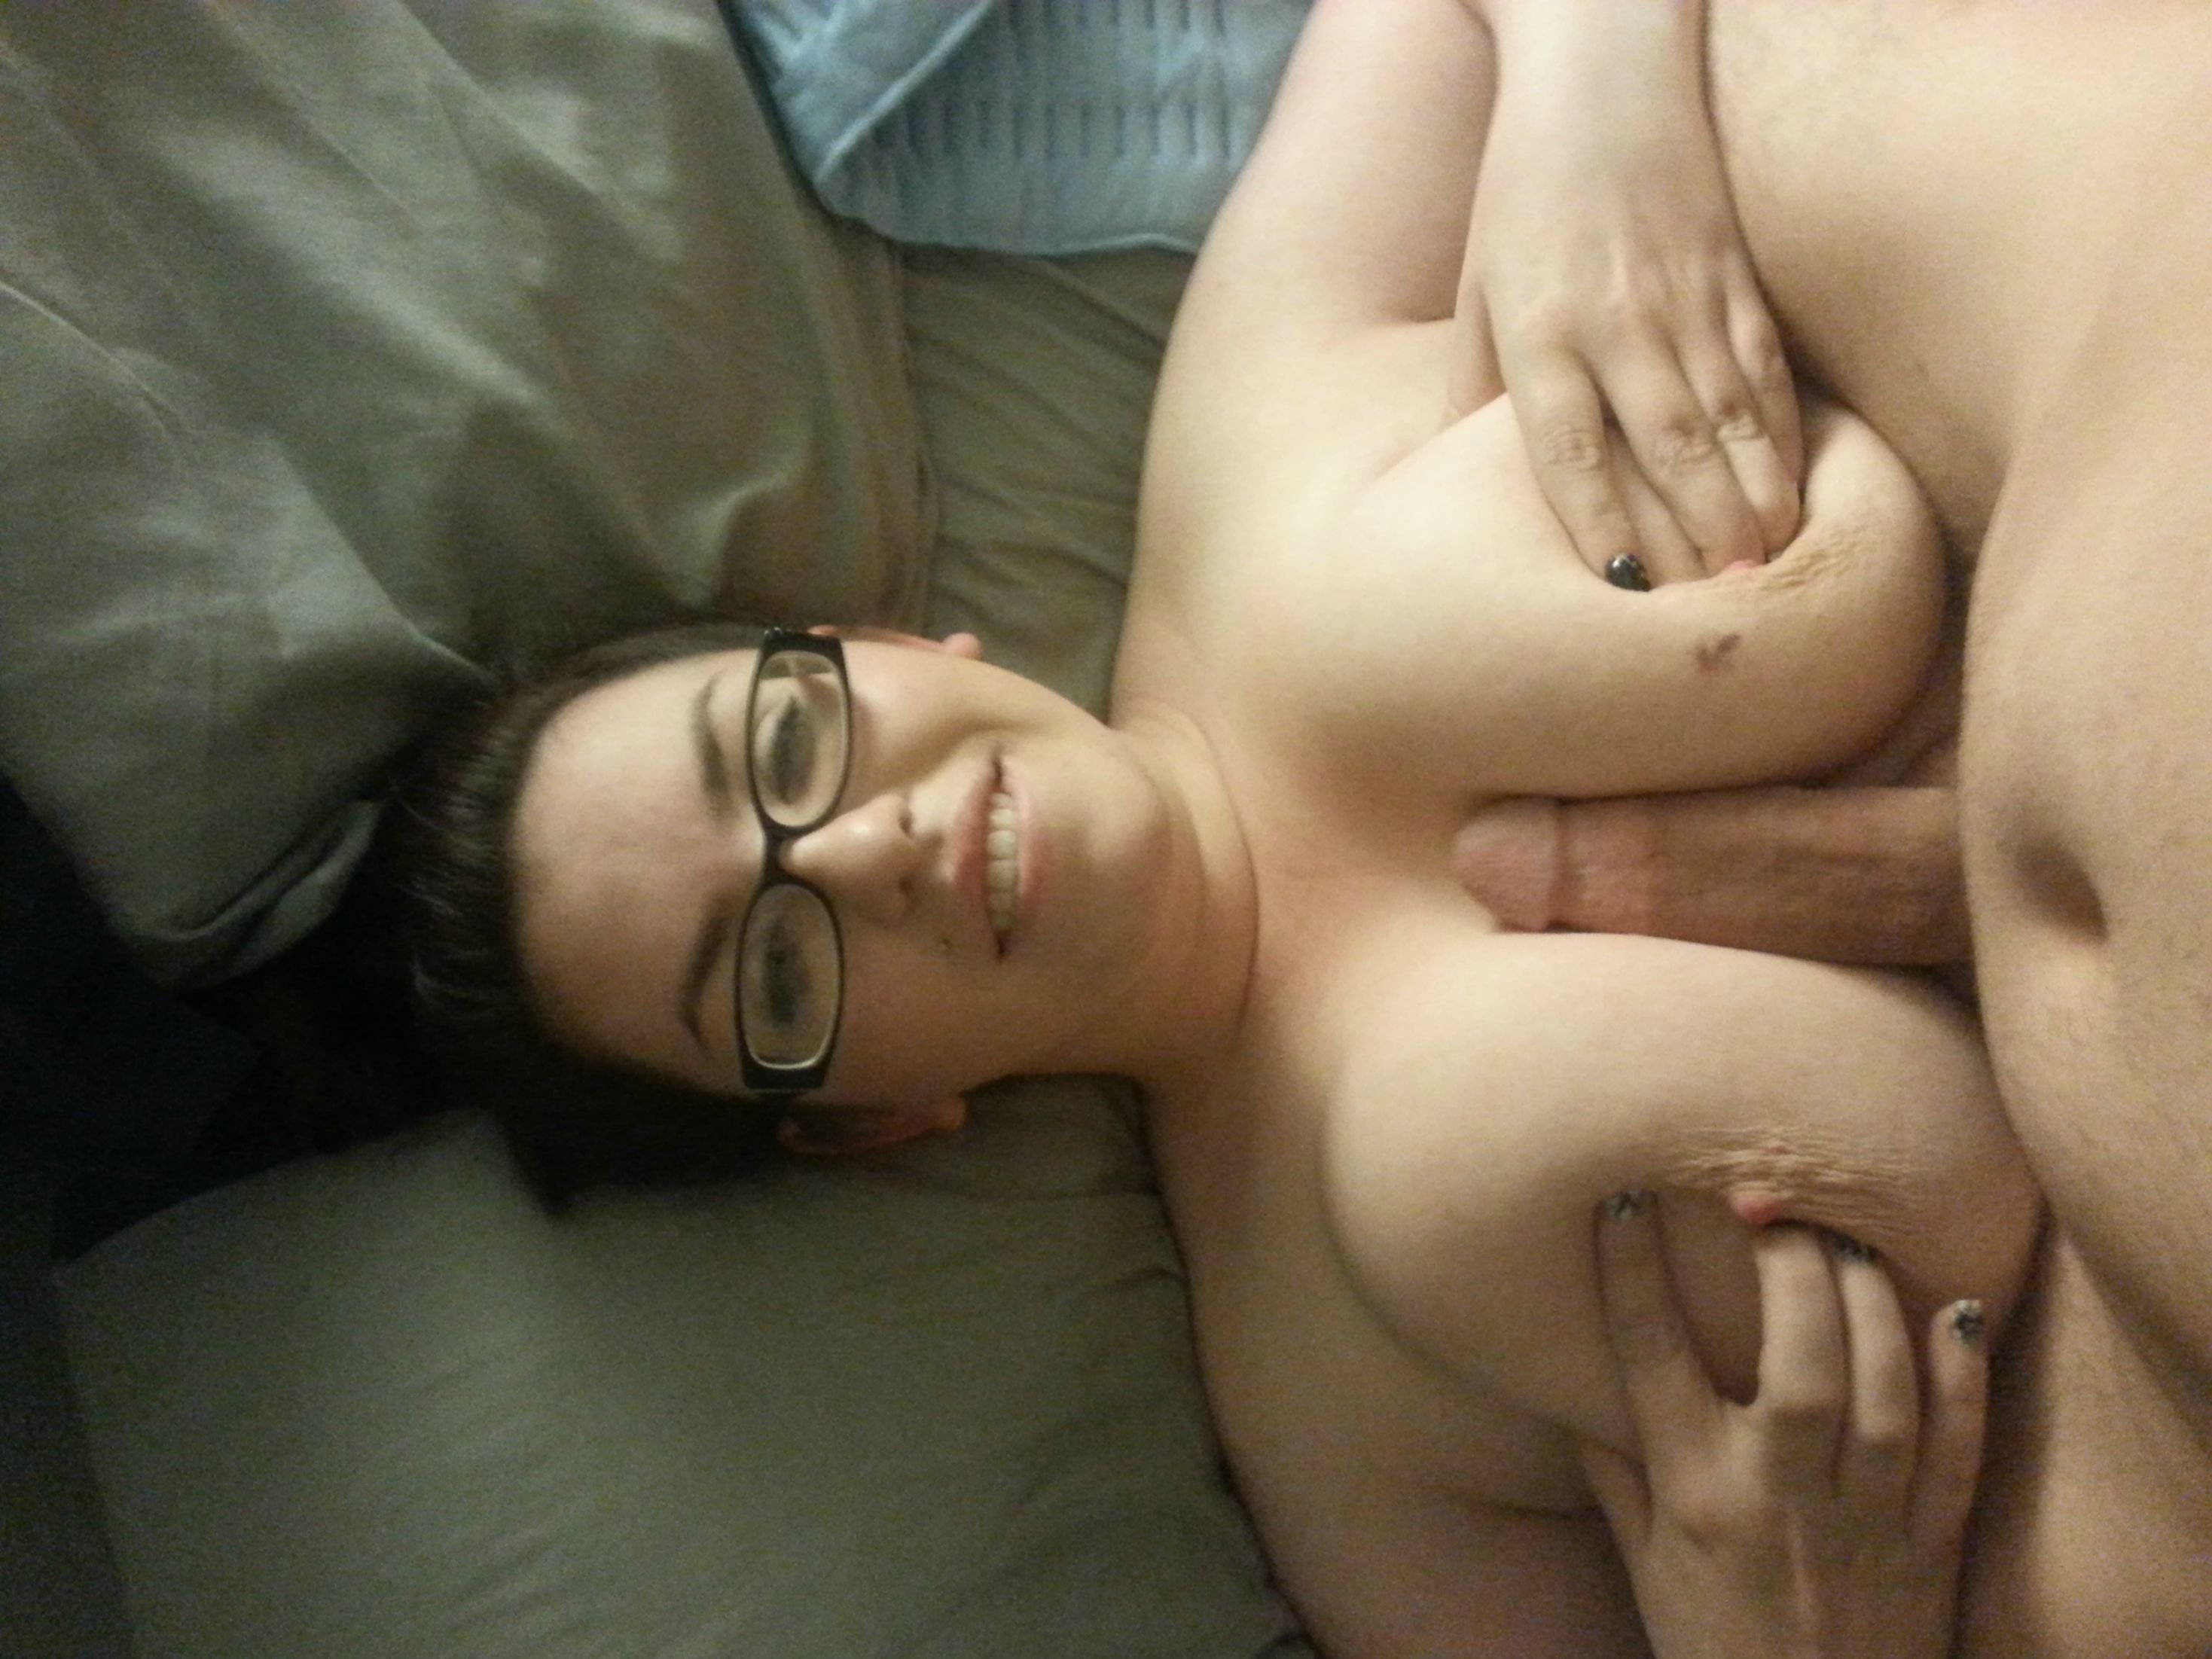 free ssbbw videos porn best kiss